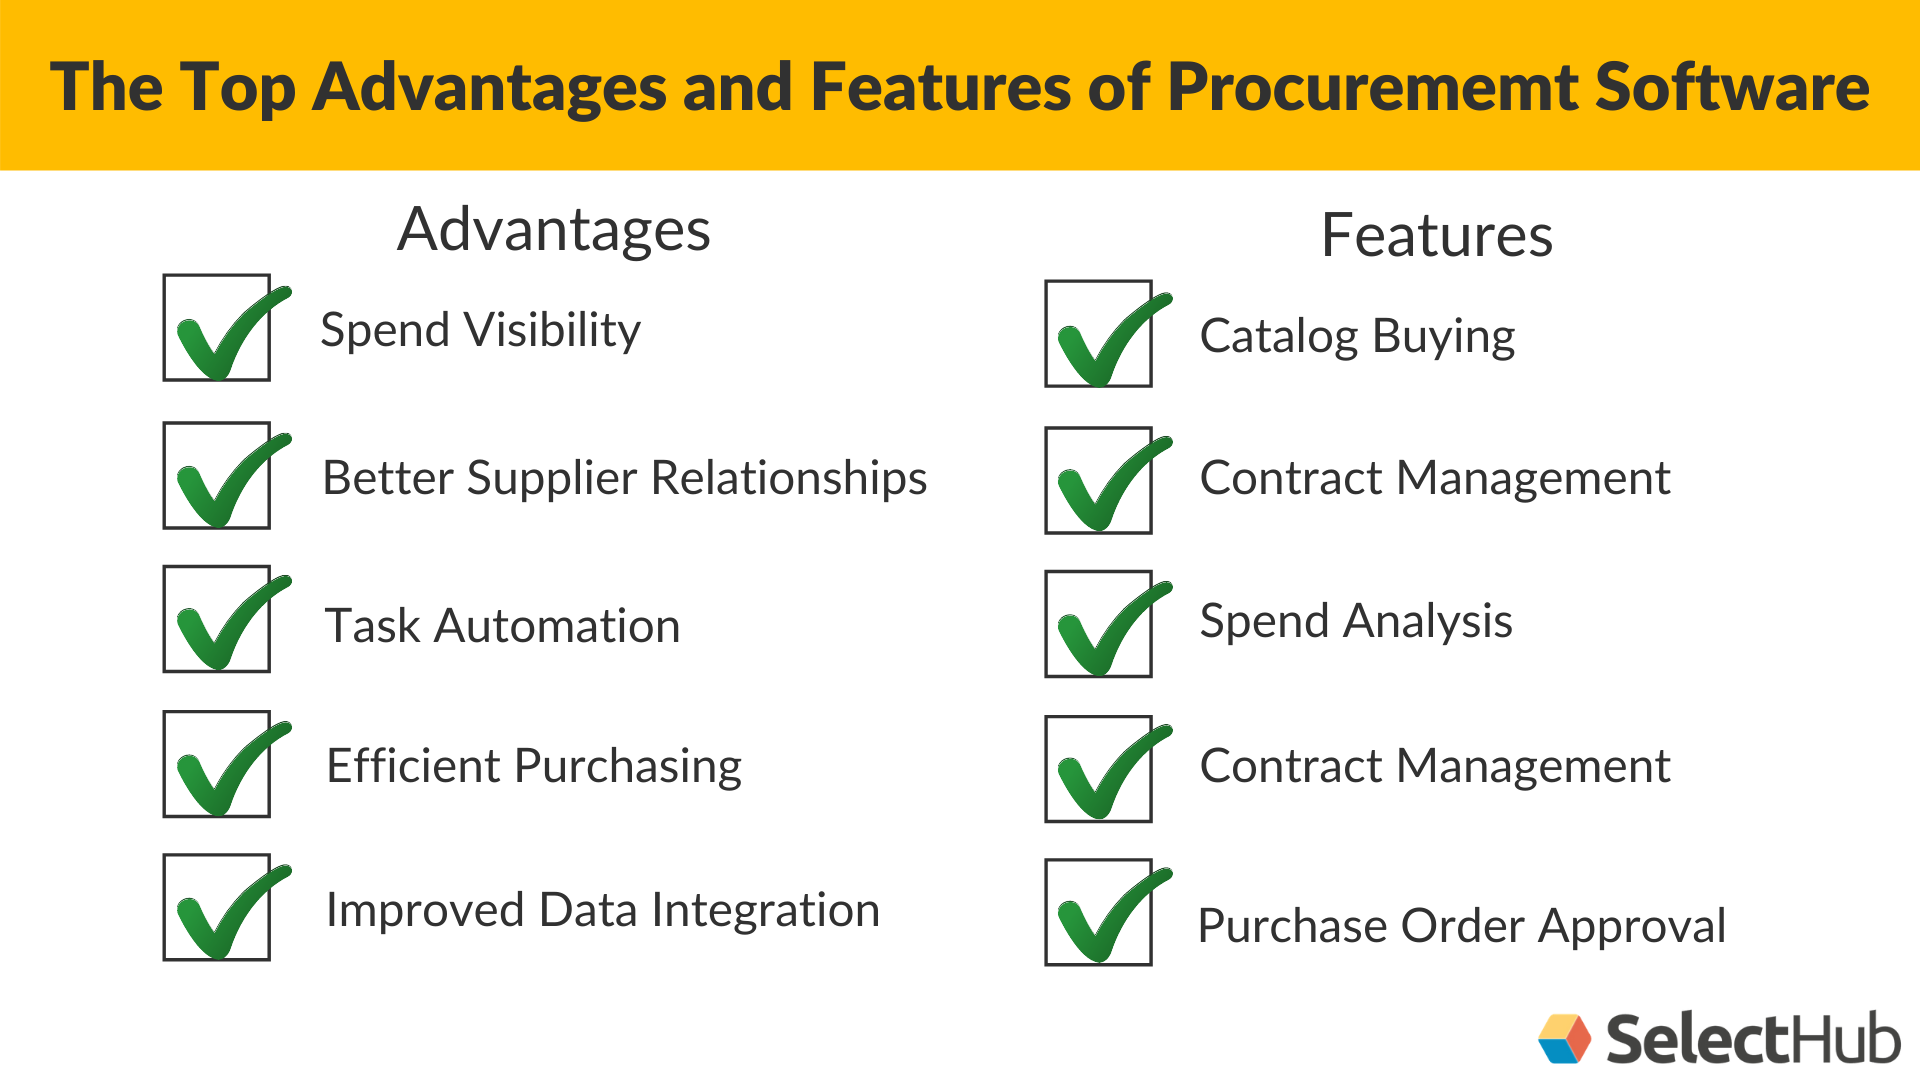 Procurement Software Benefits and Features